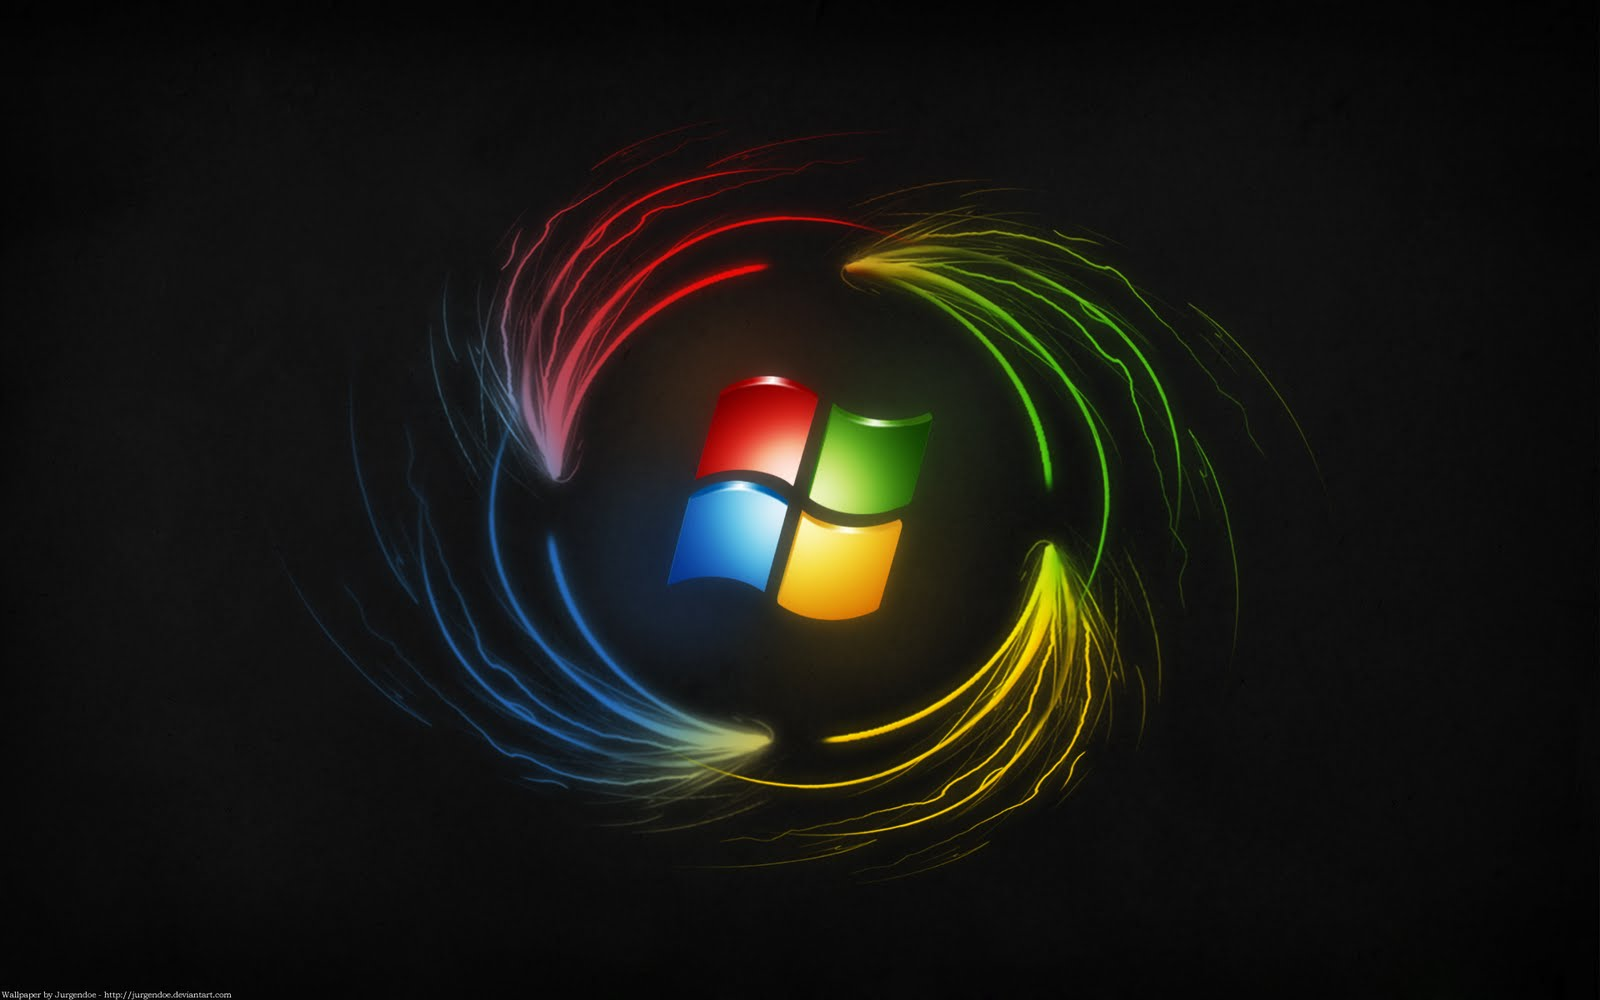 free wallpaper download - thusspokebelinsky: 27 windows 8 wallpapers